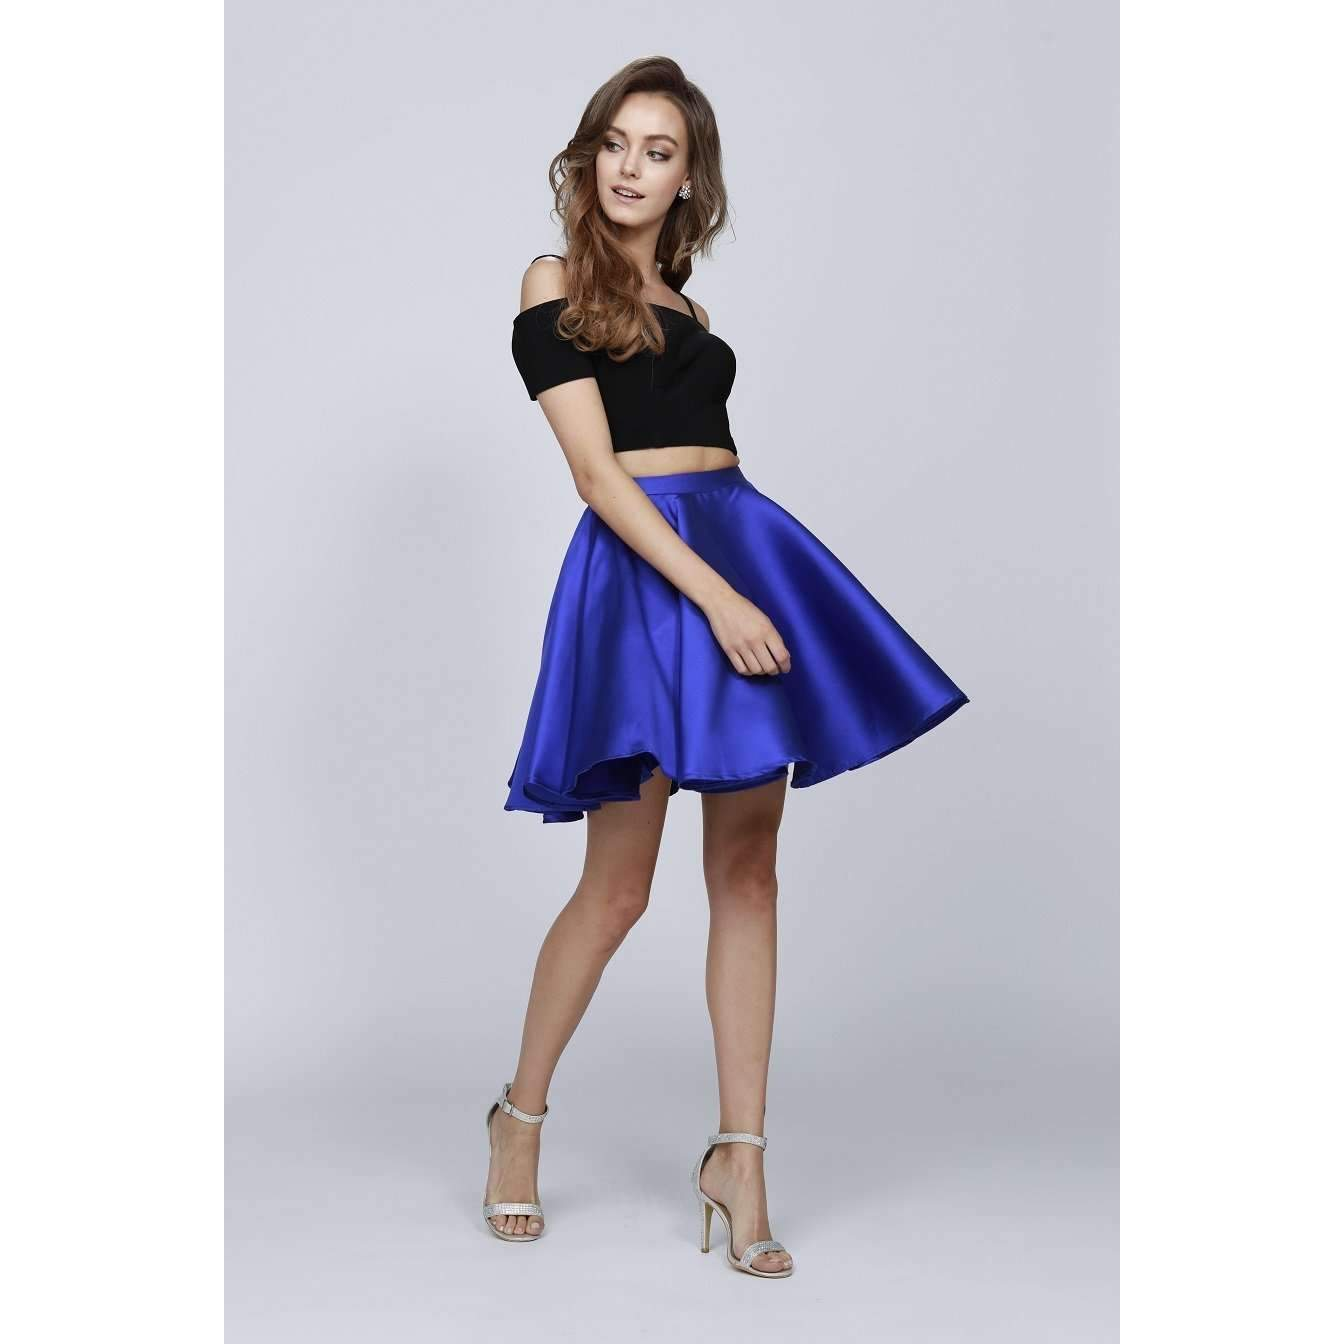 Two-Piece and Cold-Shoulder Short Dress 809 - Julietdresses